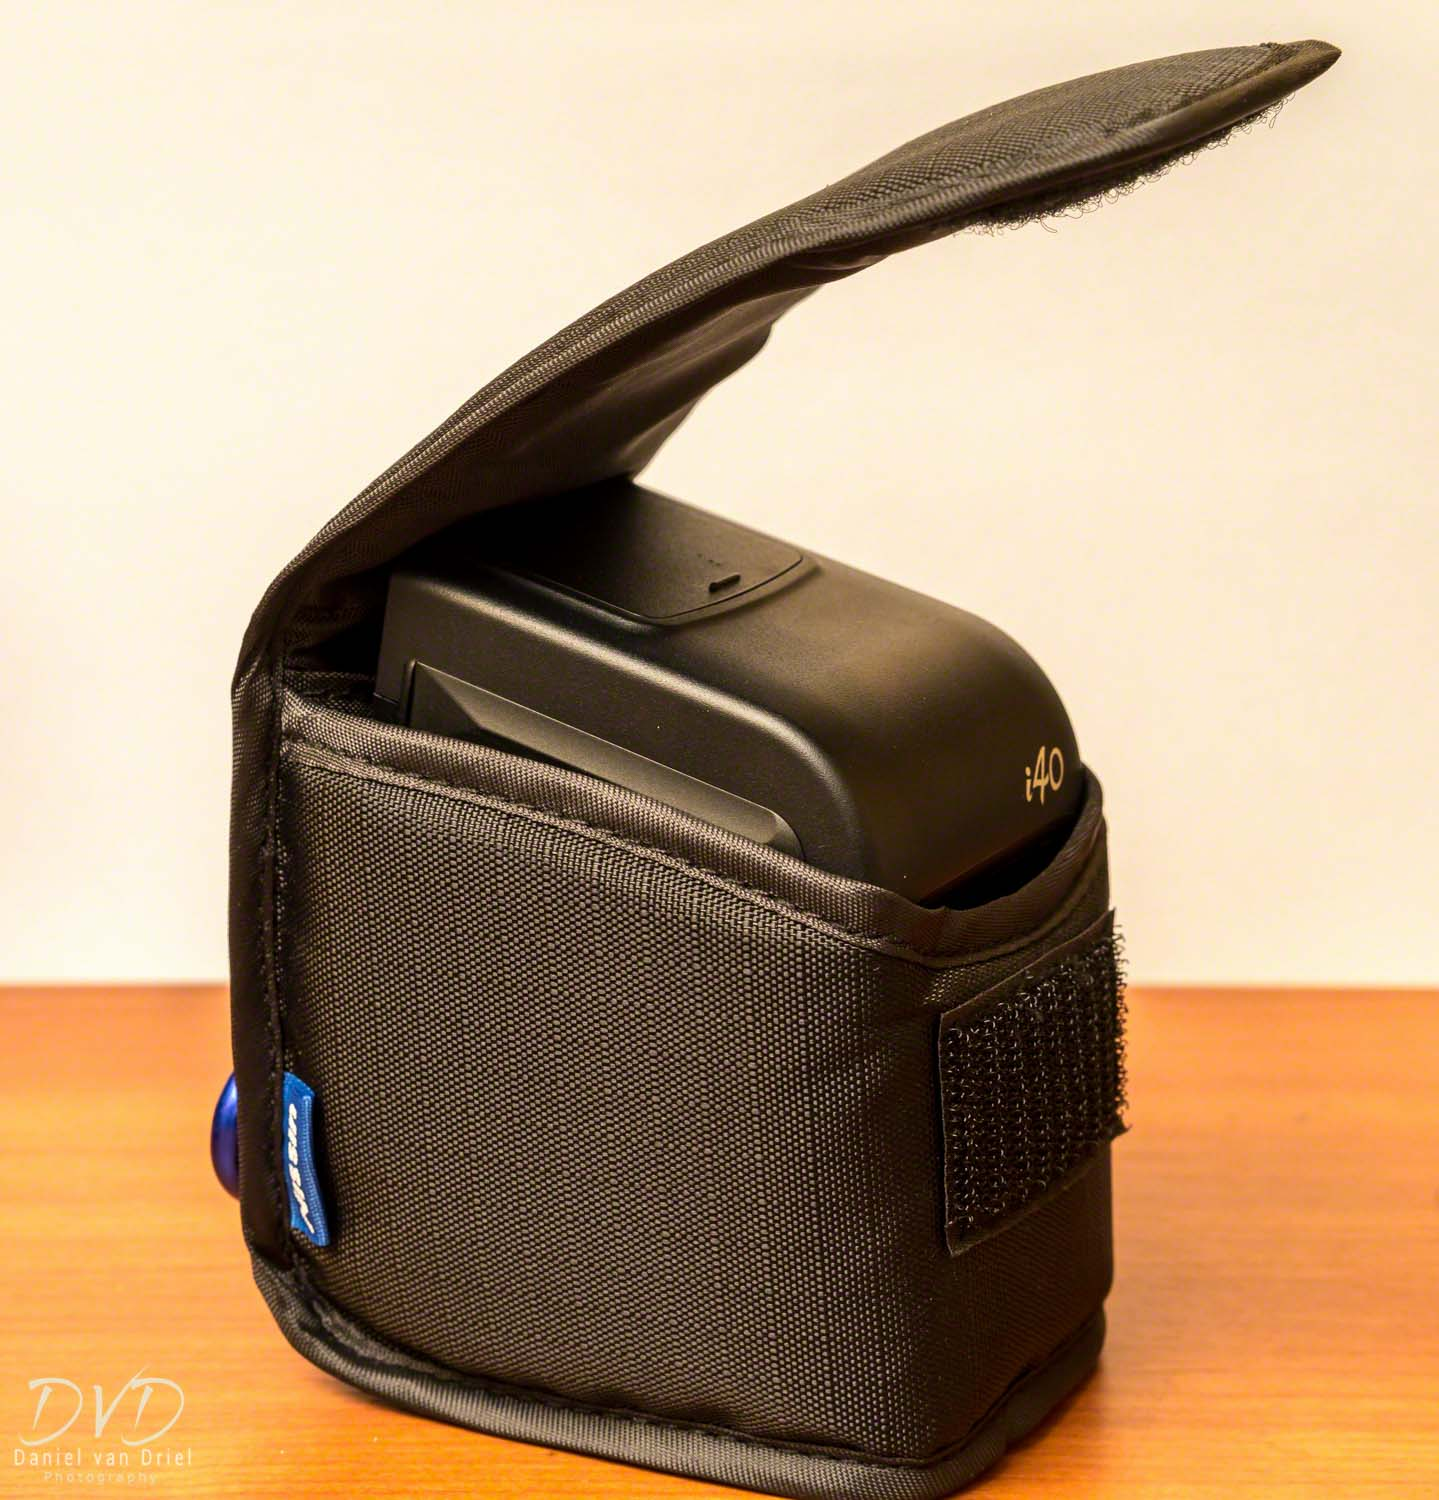 Included Case for Nissin i40